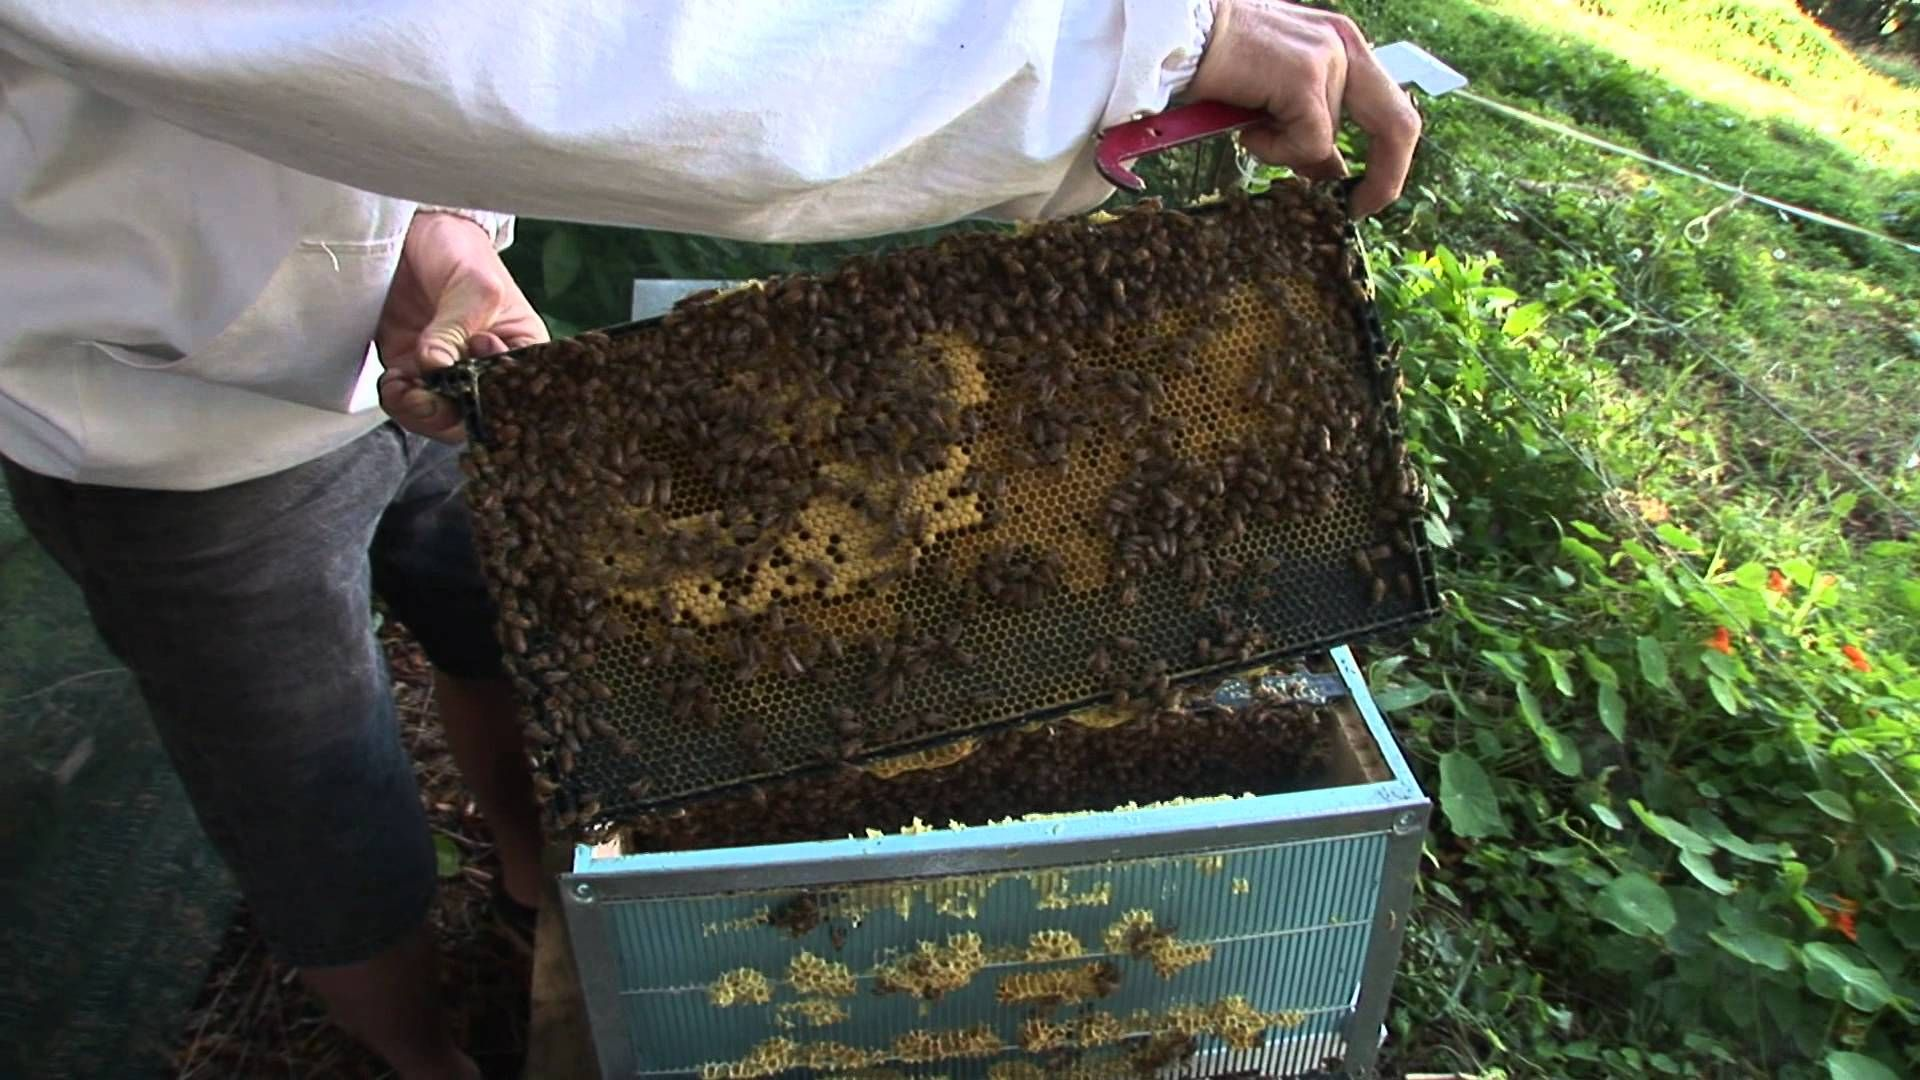 How To Keep Bees The Basics Small Vegetable Gardens Home